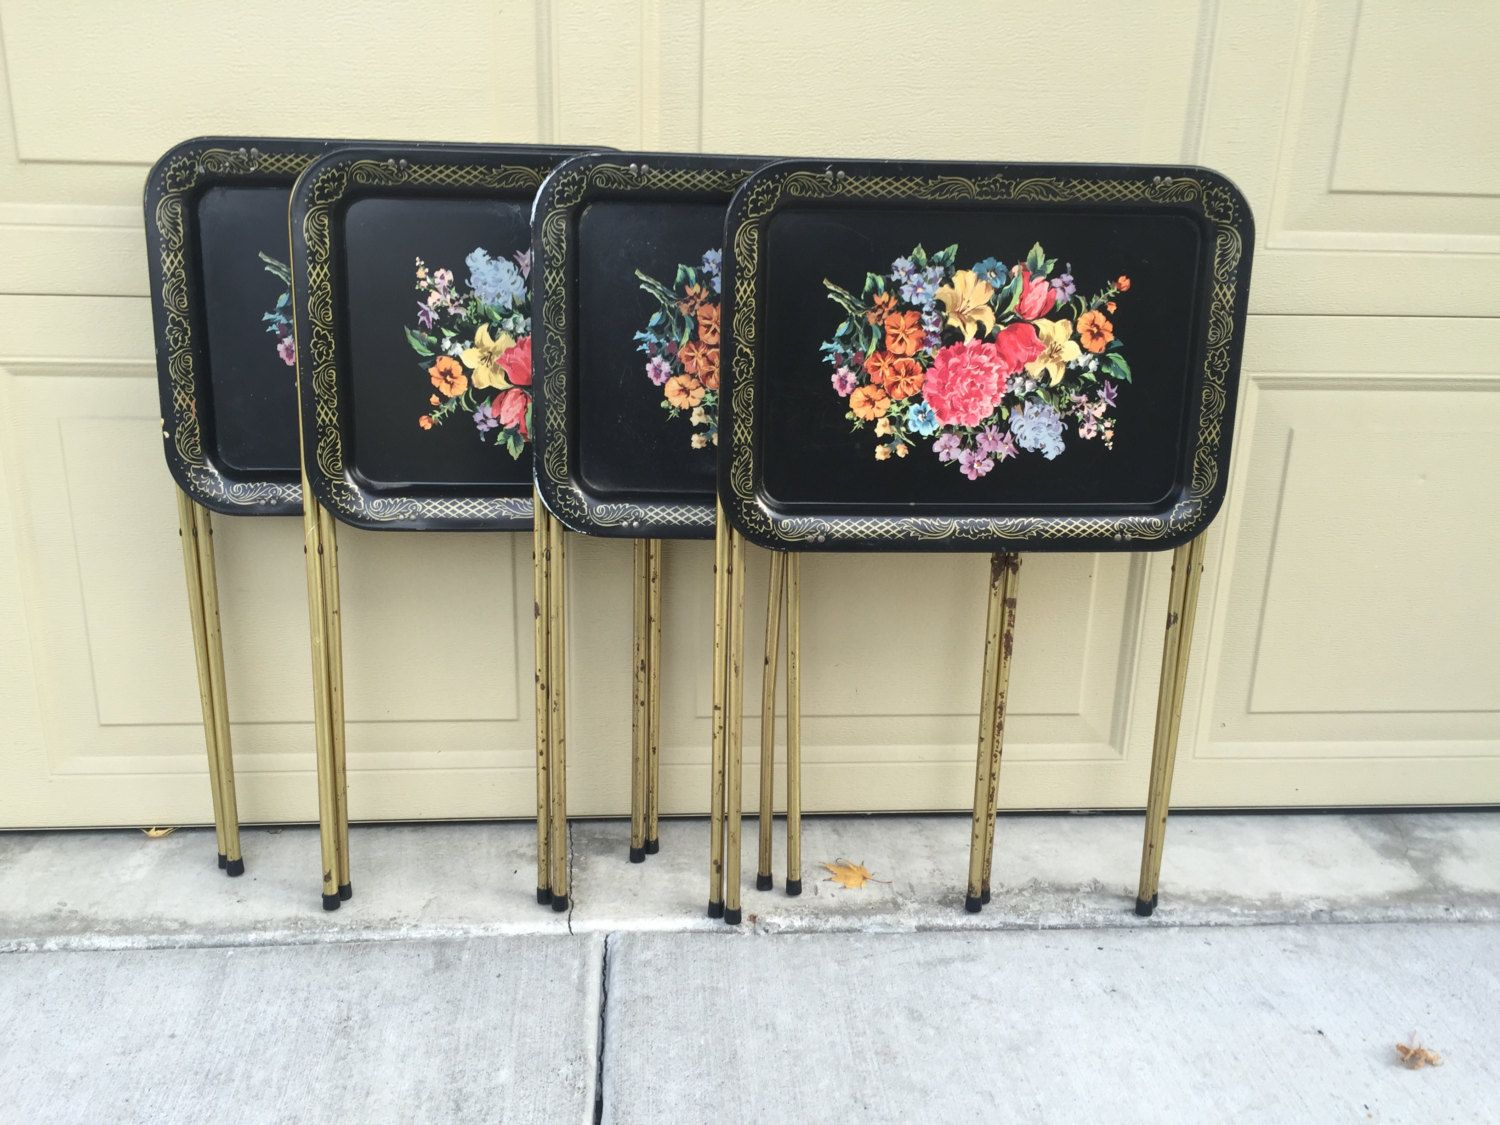 "Heavy Duty Steel 14/"" x 8 2 METAL LAP TRAYS MidCentury 5/"",White w//FLowers"